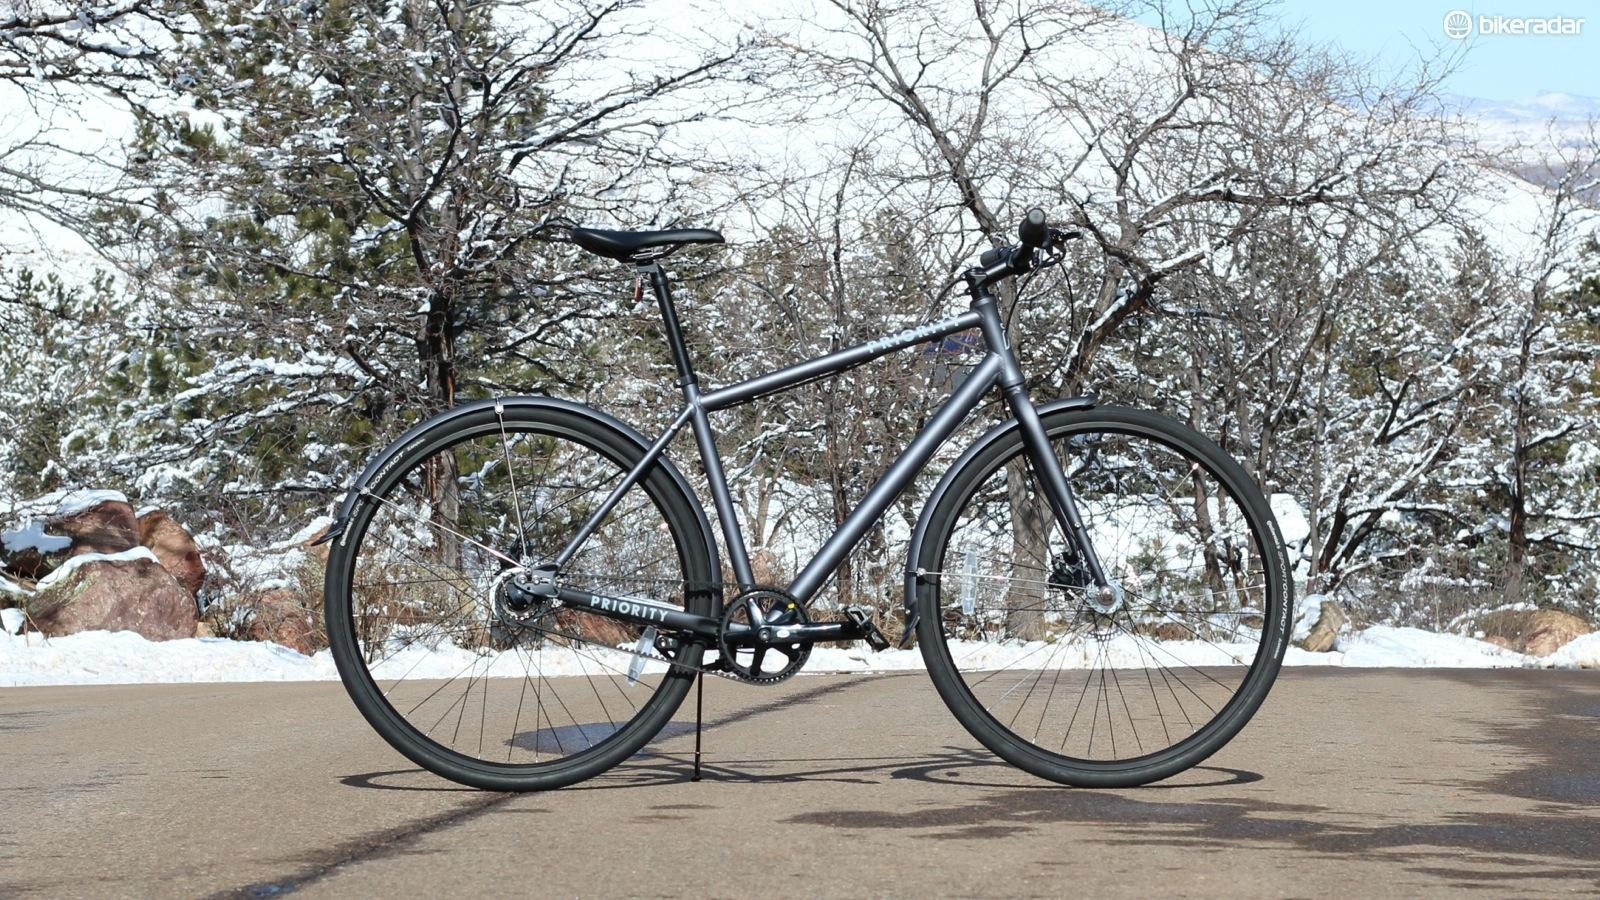 I tested the bike through all types of weather, both for riding and just outdoor storage